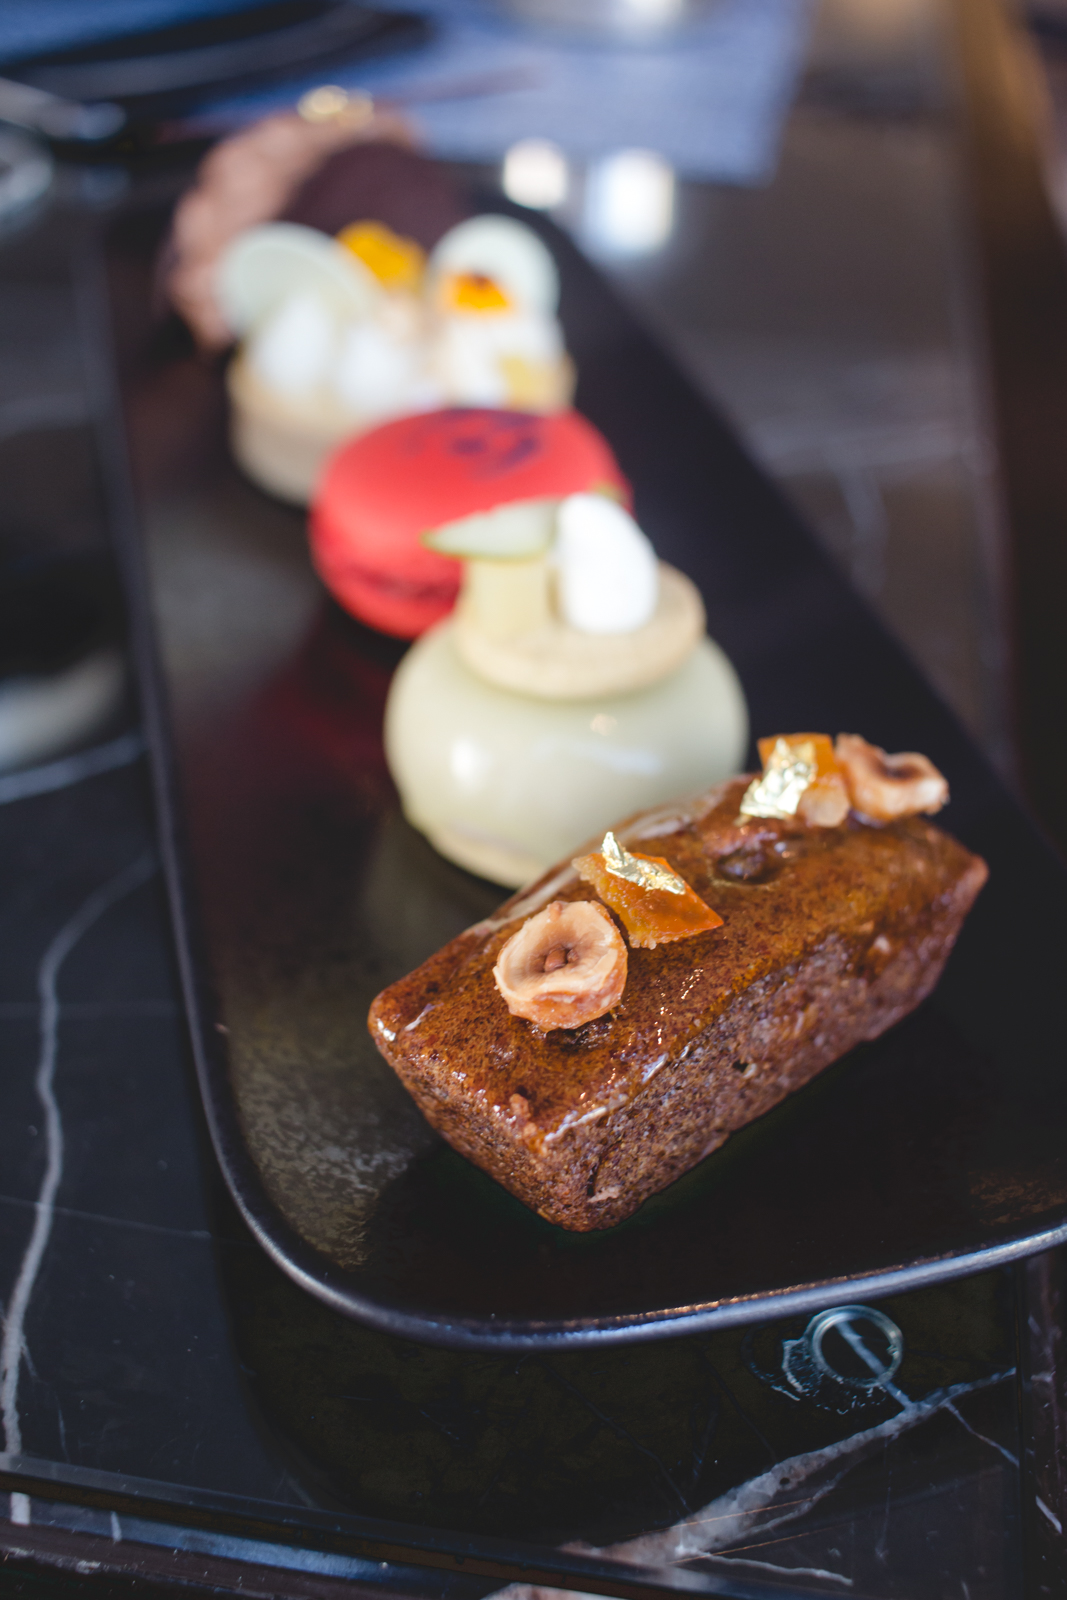 shangrila shard hotel Ting restaurant review blog London wrap your lips around this